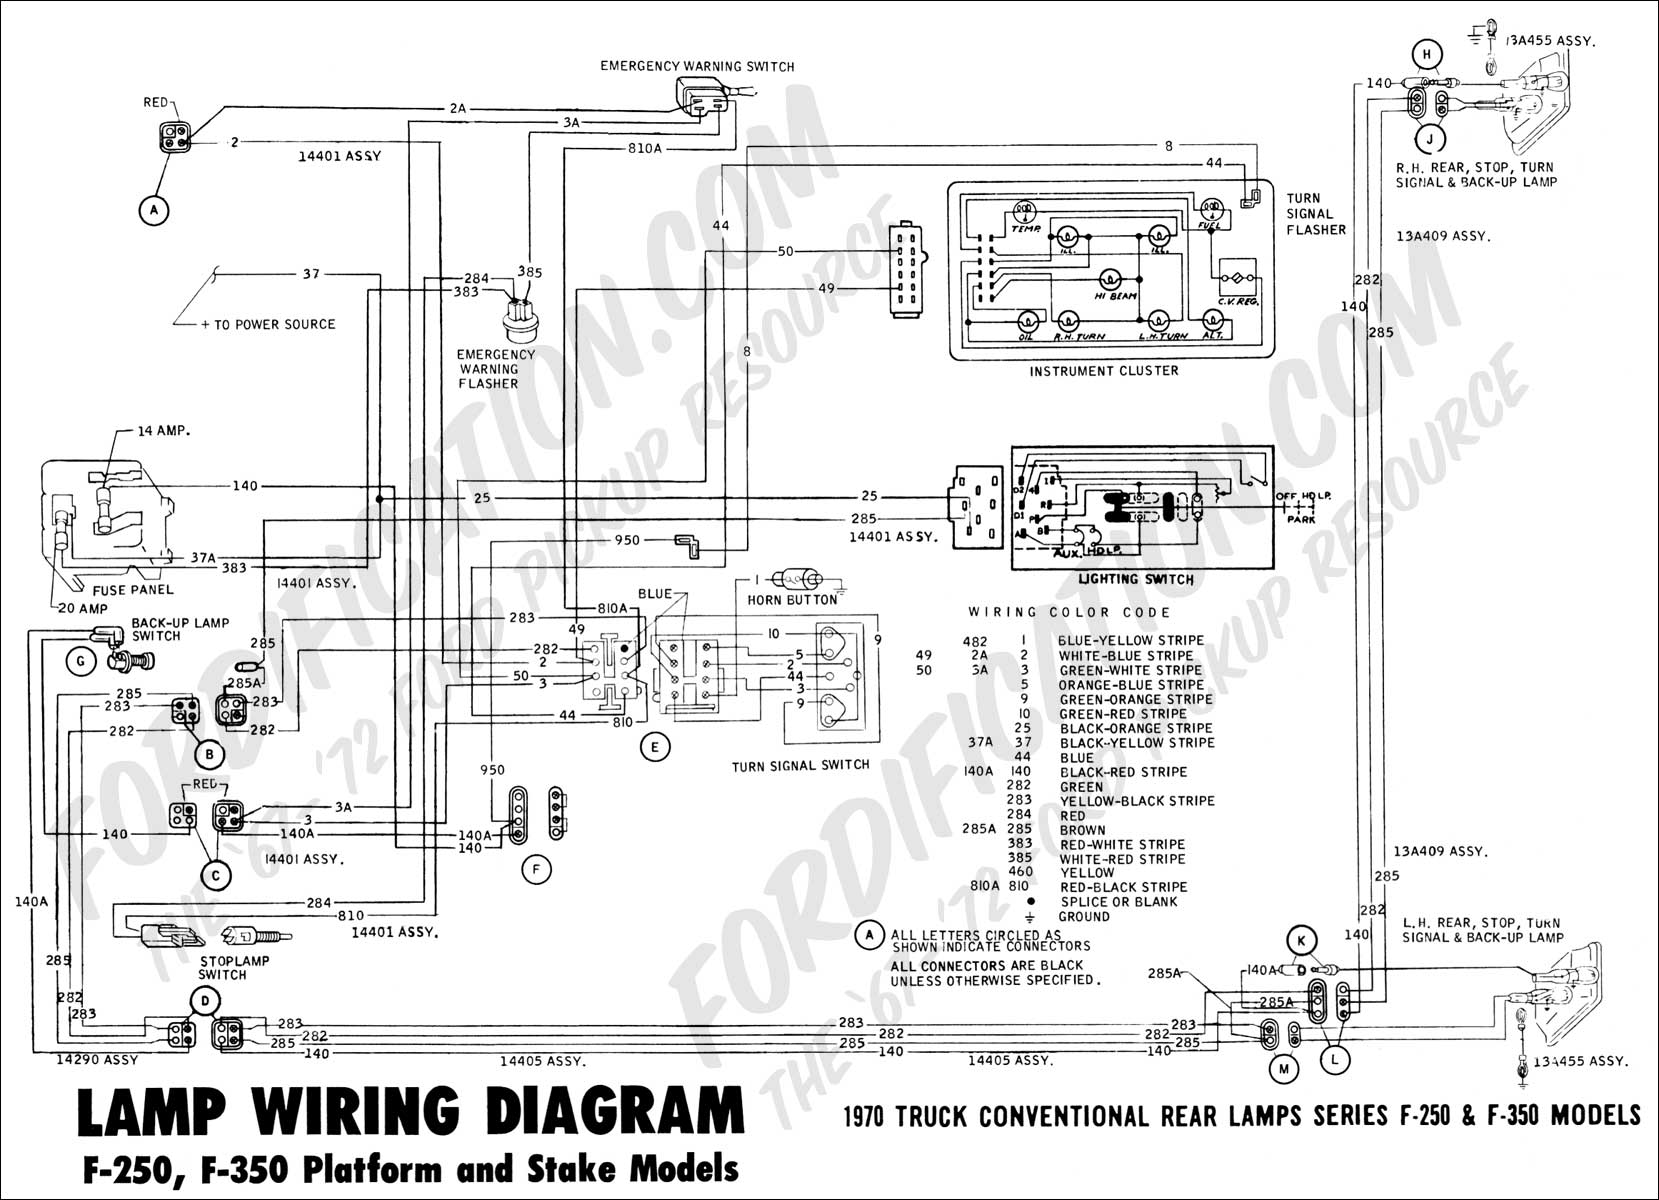 hight resolution of 1985 ford ranger lights wiring diagram wiring diagram paper ford ranger rear light wiring diagram ford ranger light wiring diagram